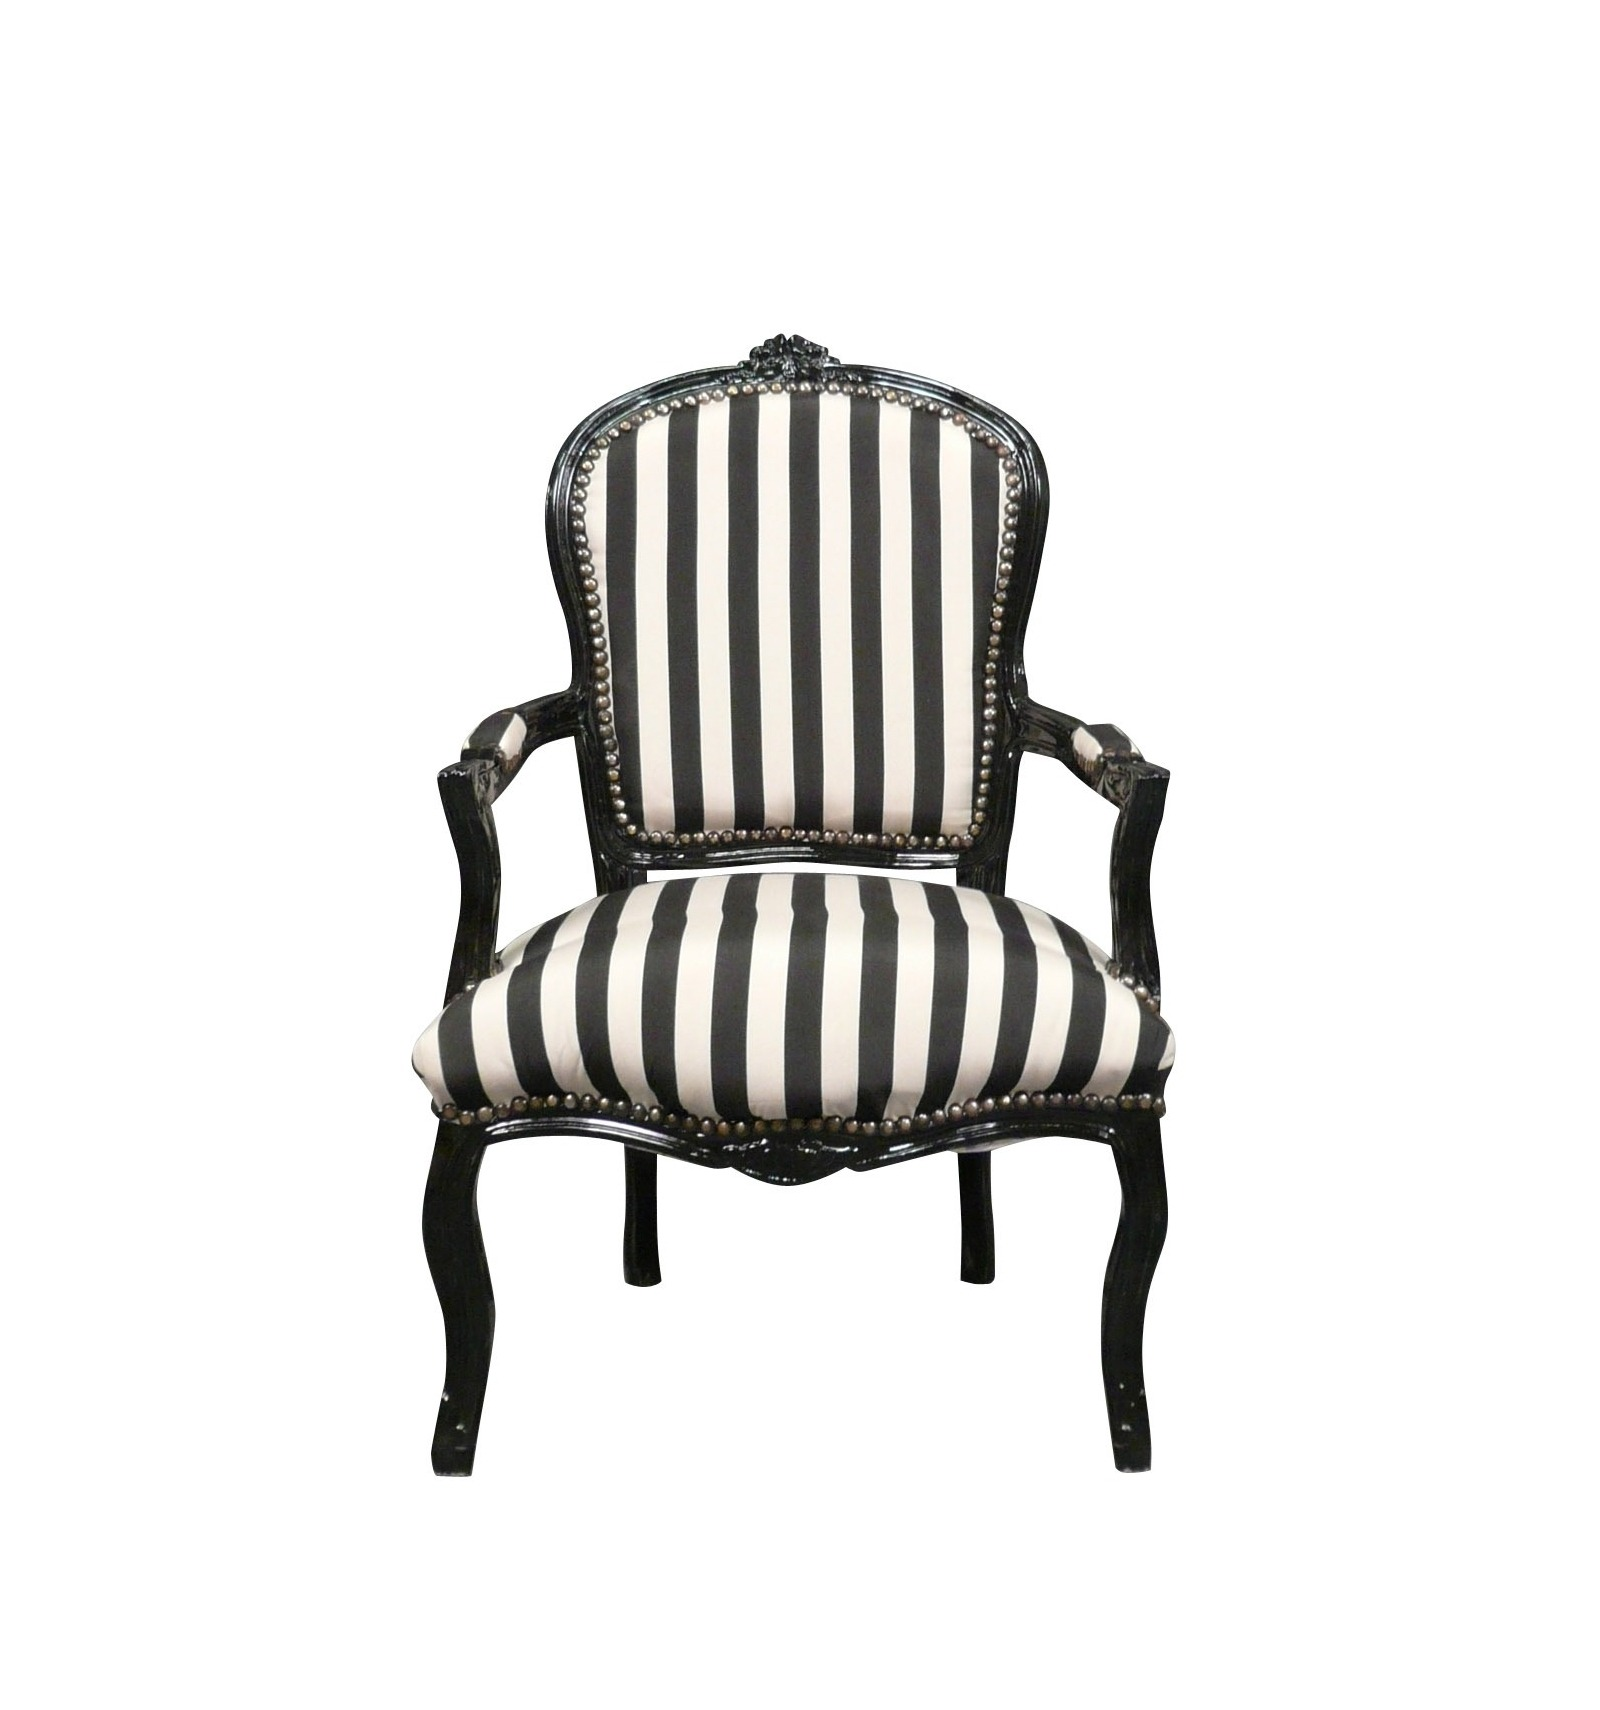 Louis xv armchair with black and white stripes for Chaise noir blanc